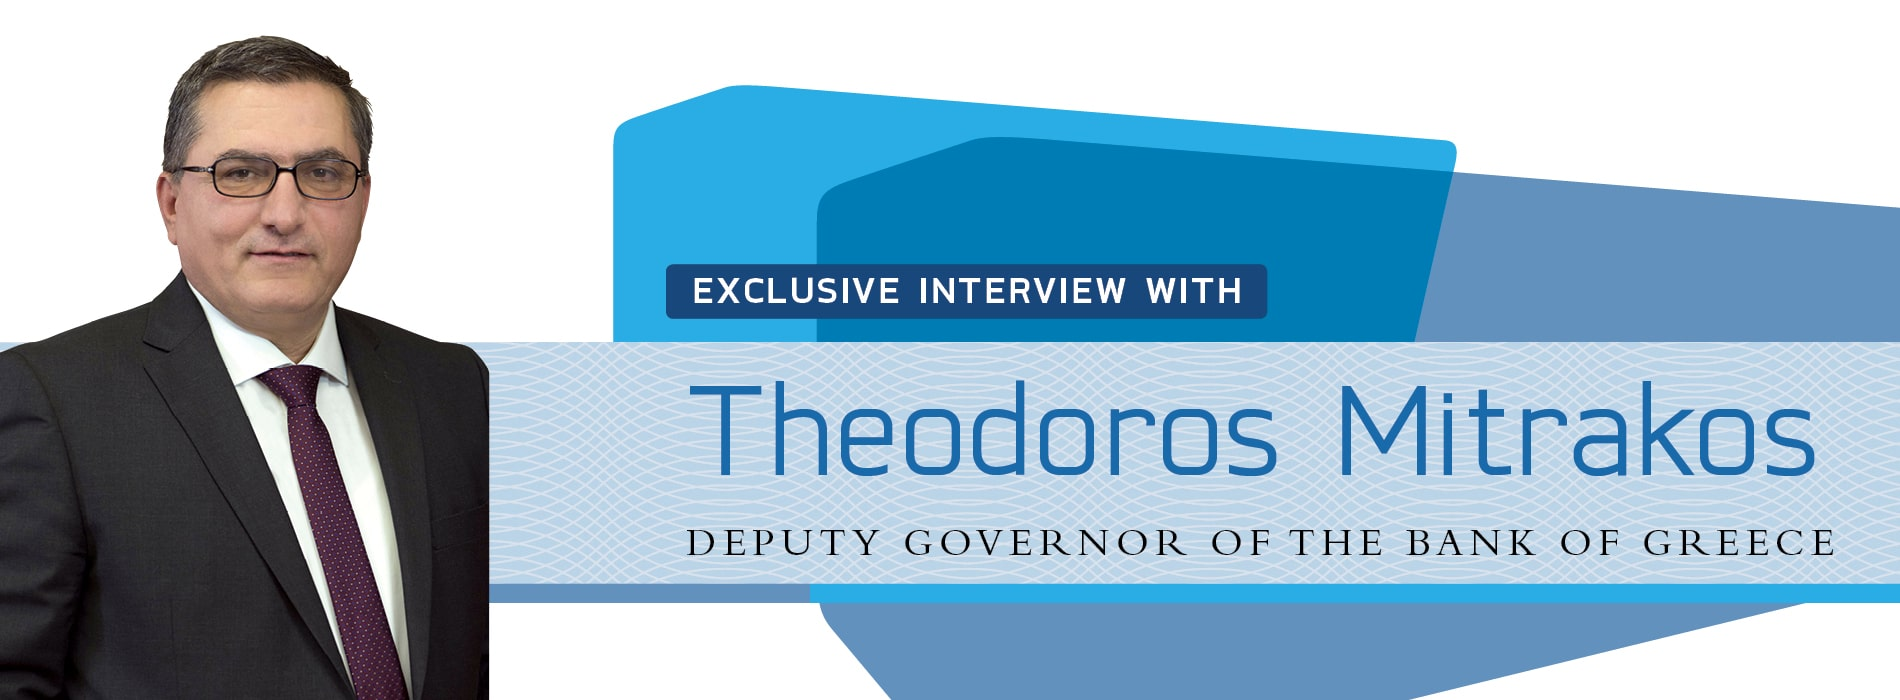 Interview with Theodoros Mitrakos,Deputy Governor of the Bank of Greece